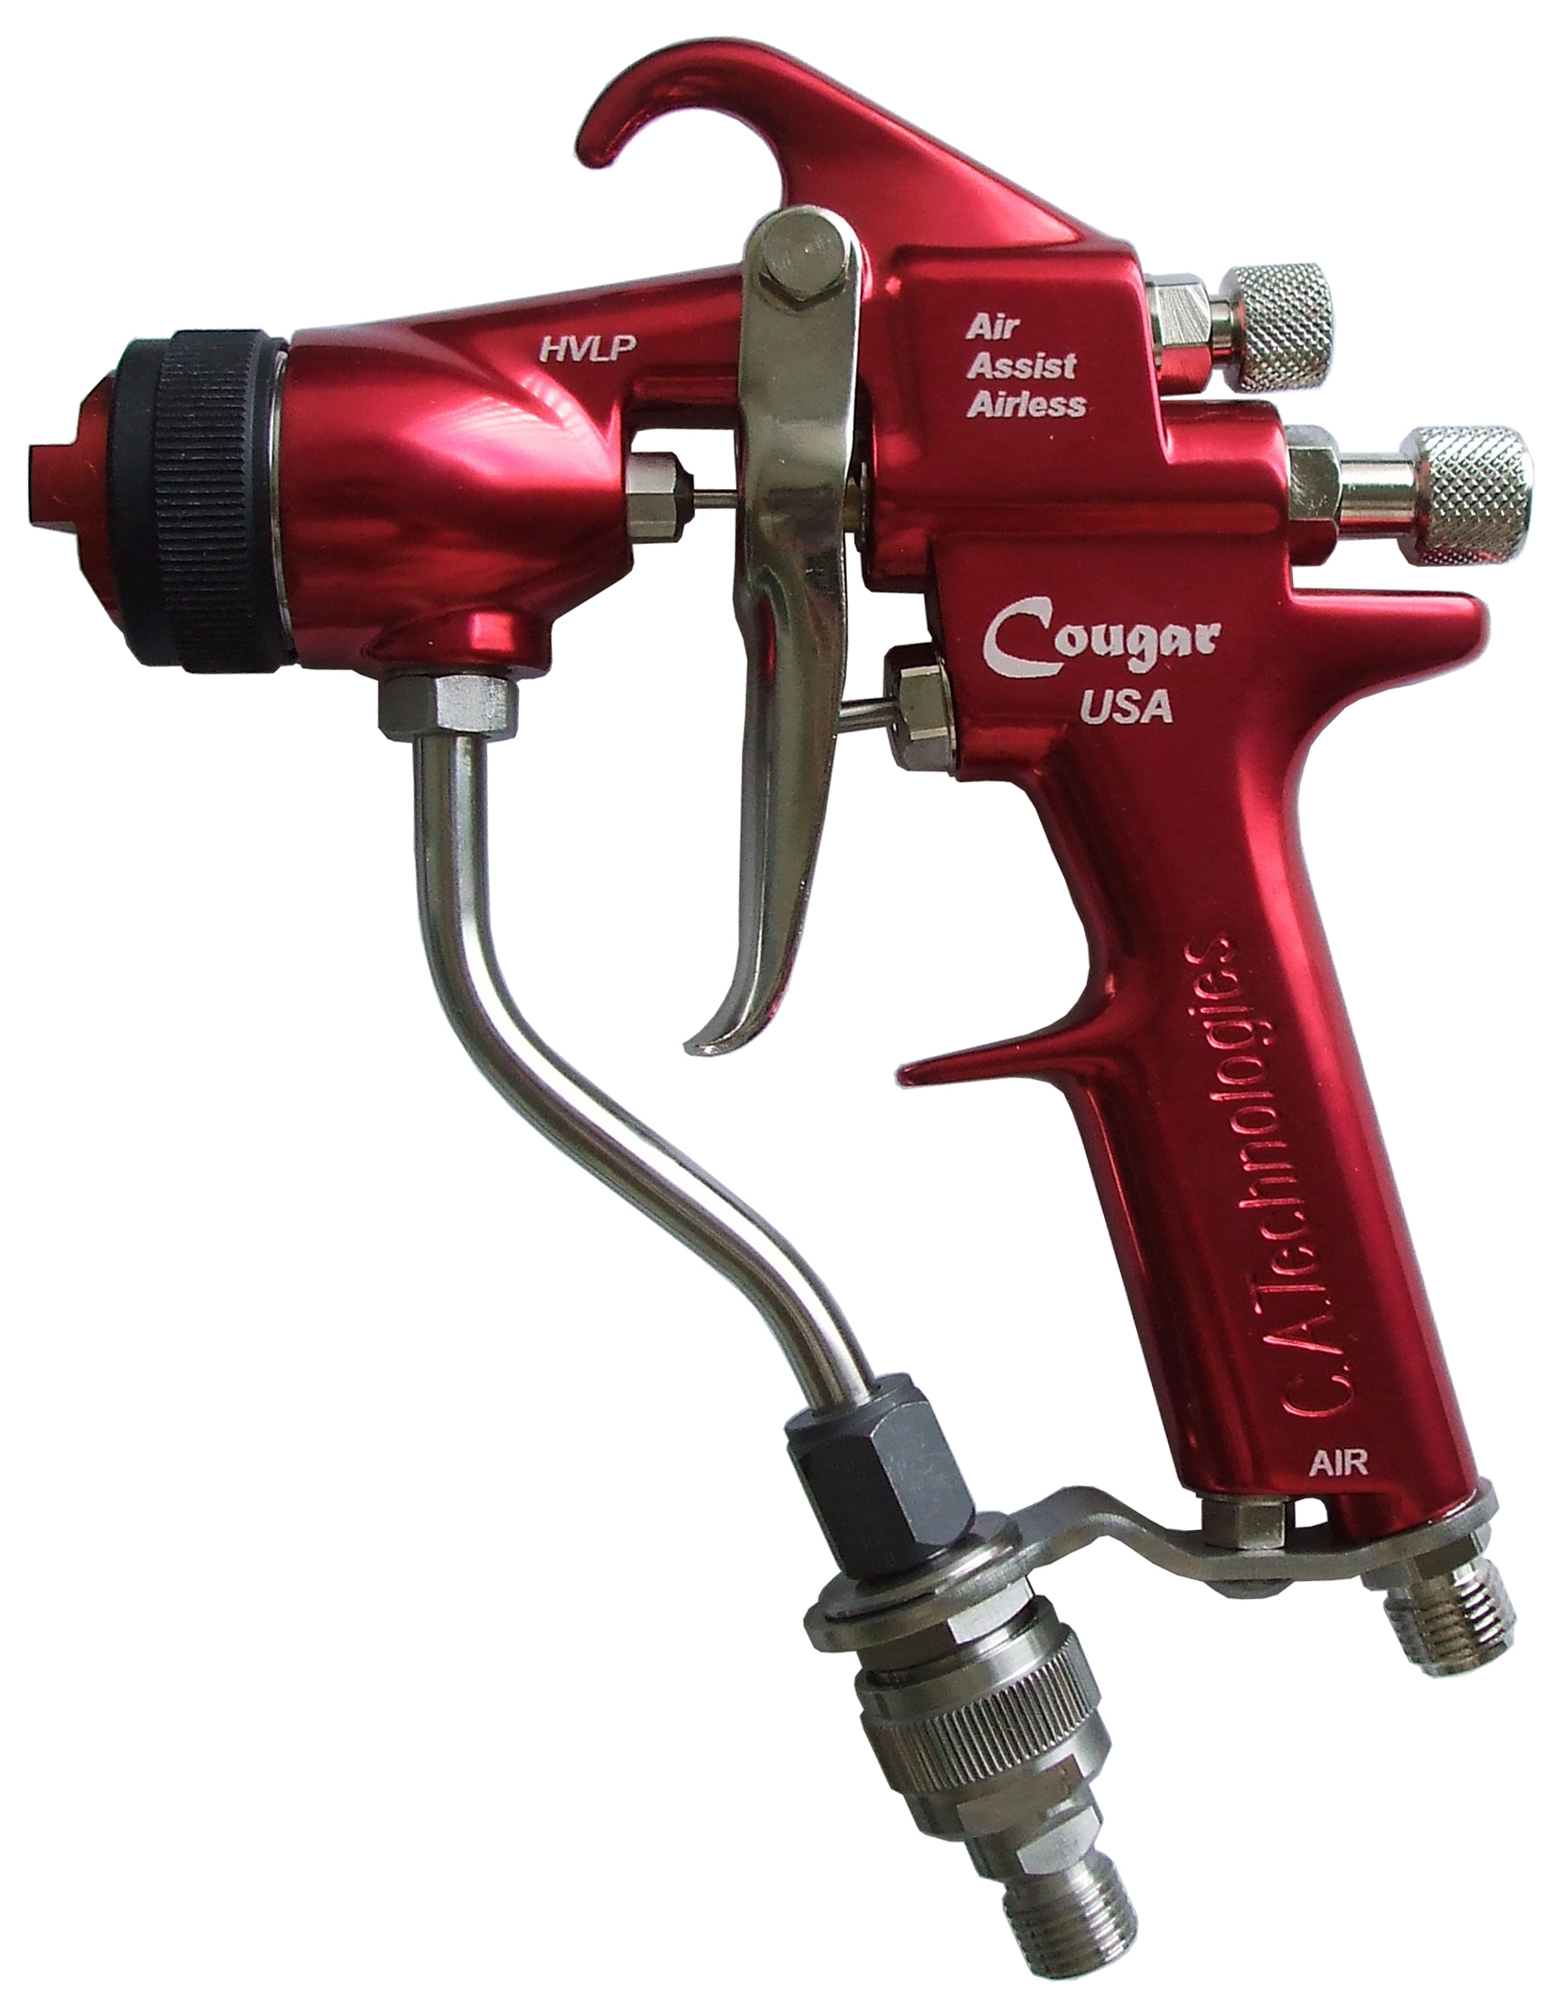 C a technologies air assist airless for Air or airless paint sprayer